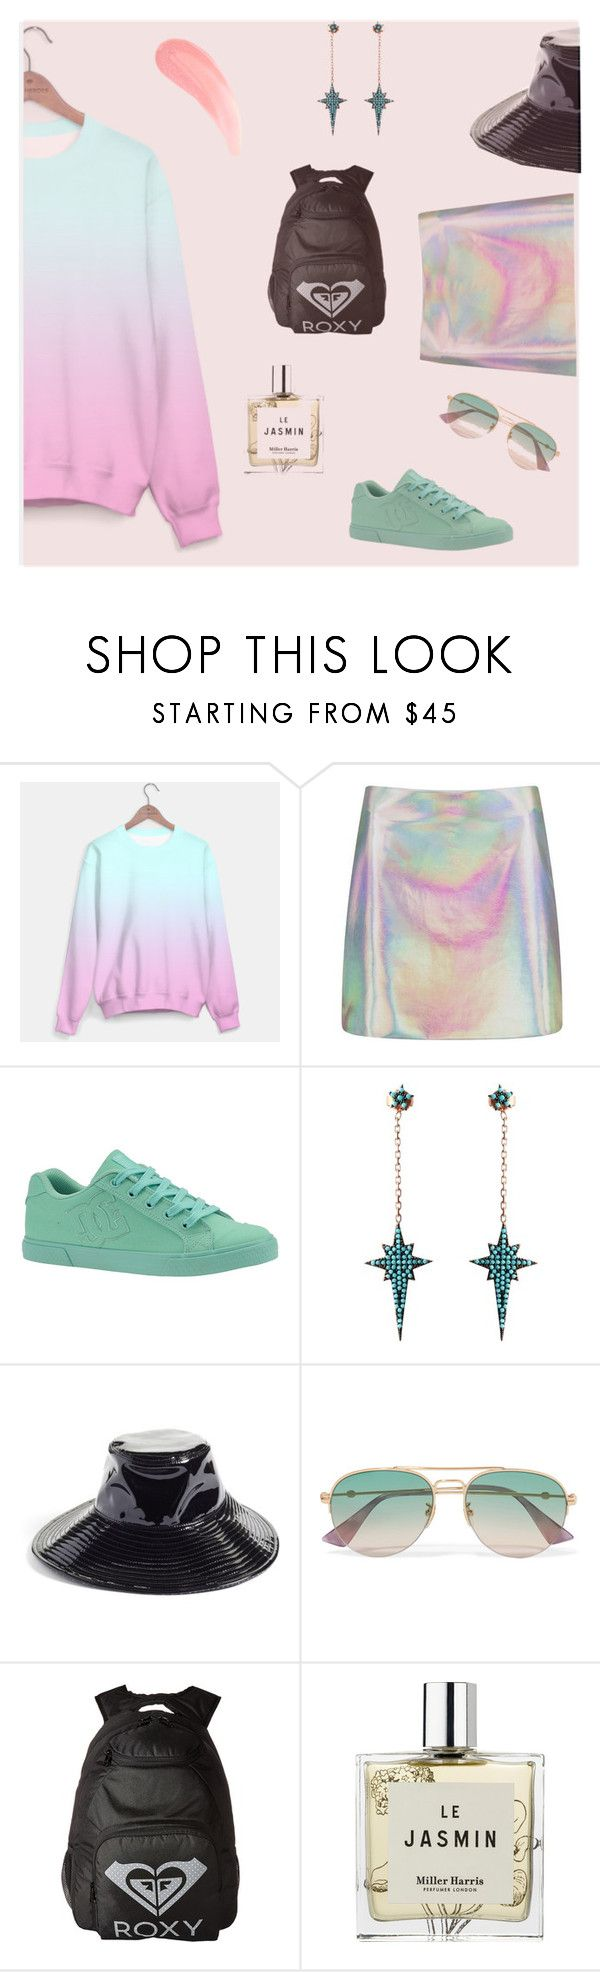 """""""Girls Outfit #12"""" by pureclothingco on Polyvore featuring moda, Nasty Gal, DC Shoes, Wild Hearts, Eric Javits, Gucci, Roxy, Miller Harris, outfit y chic"""